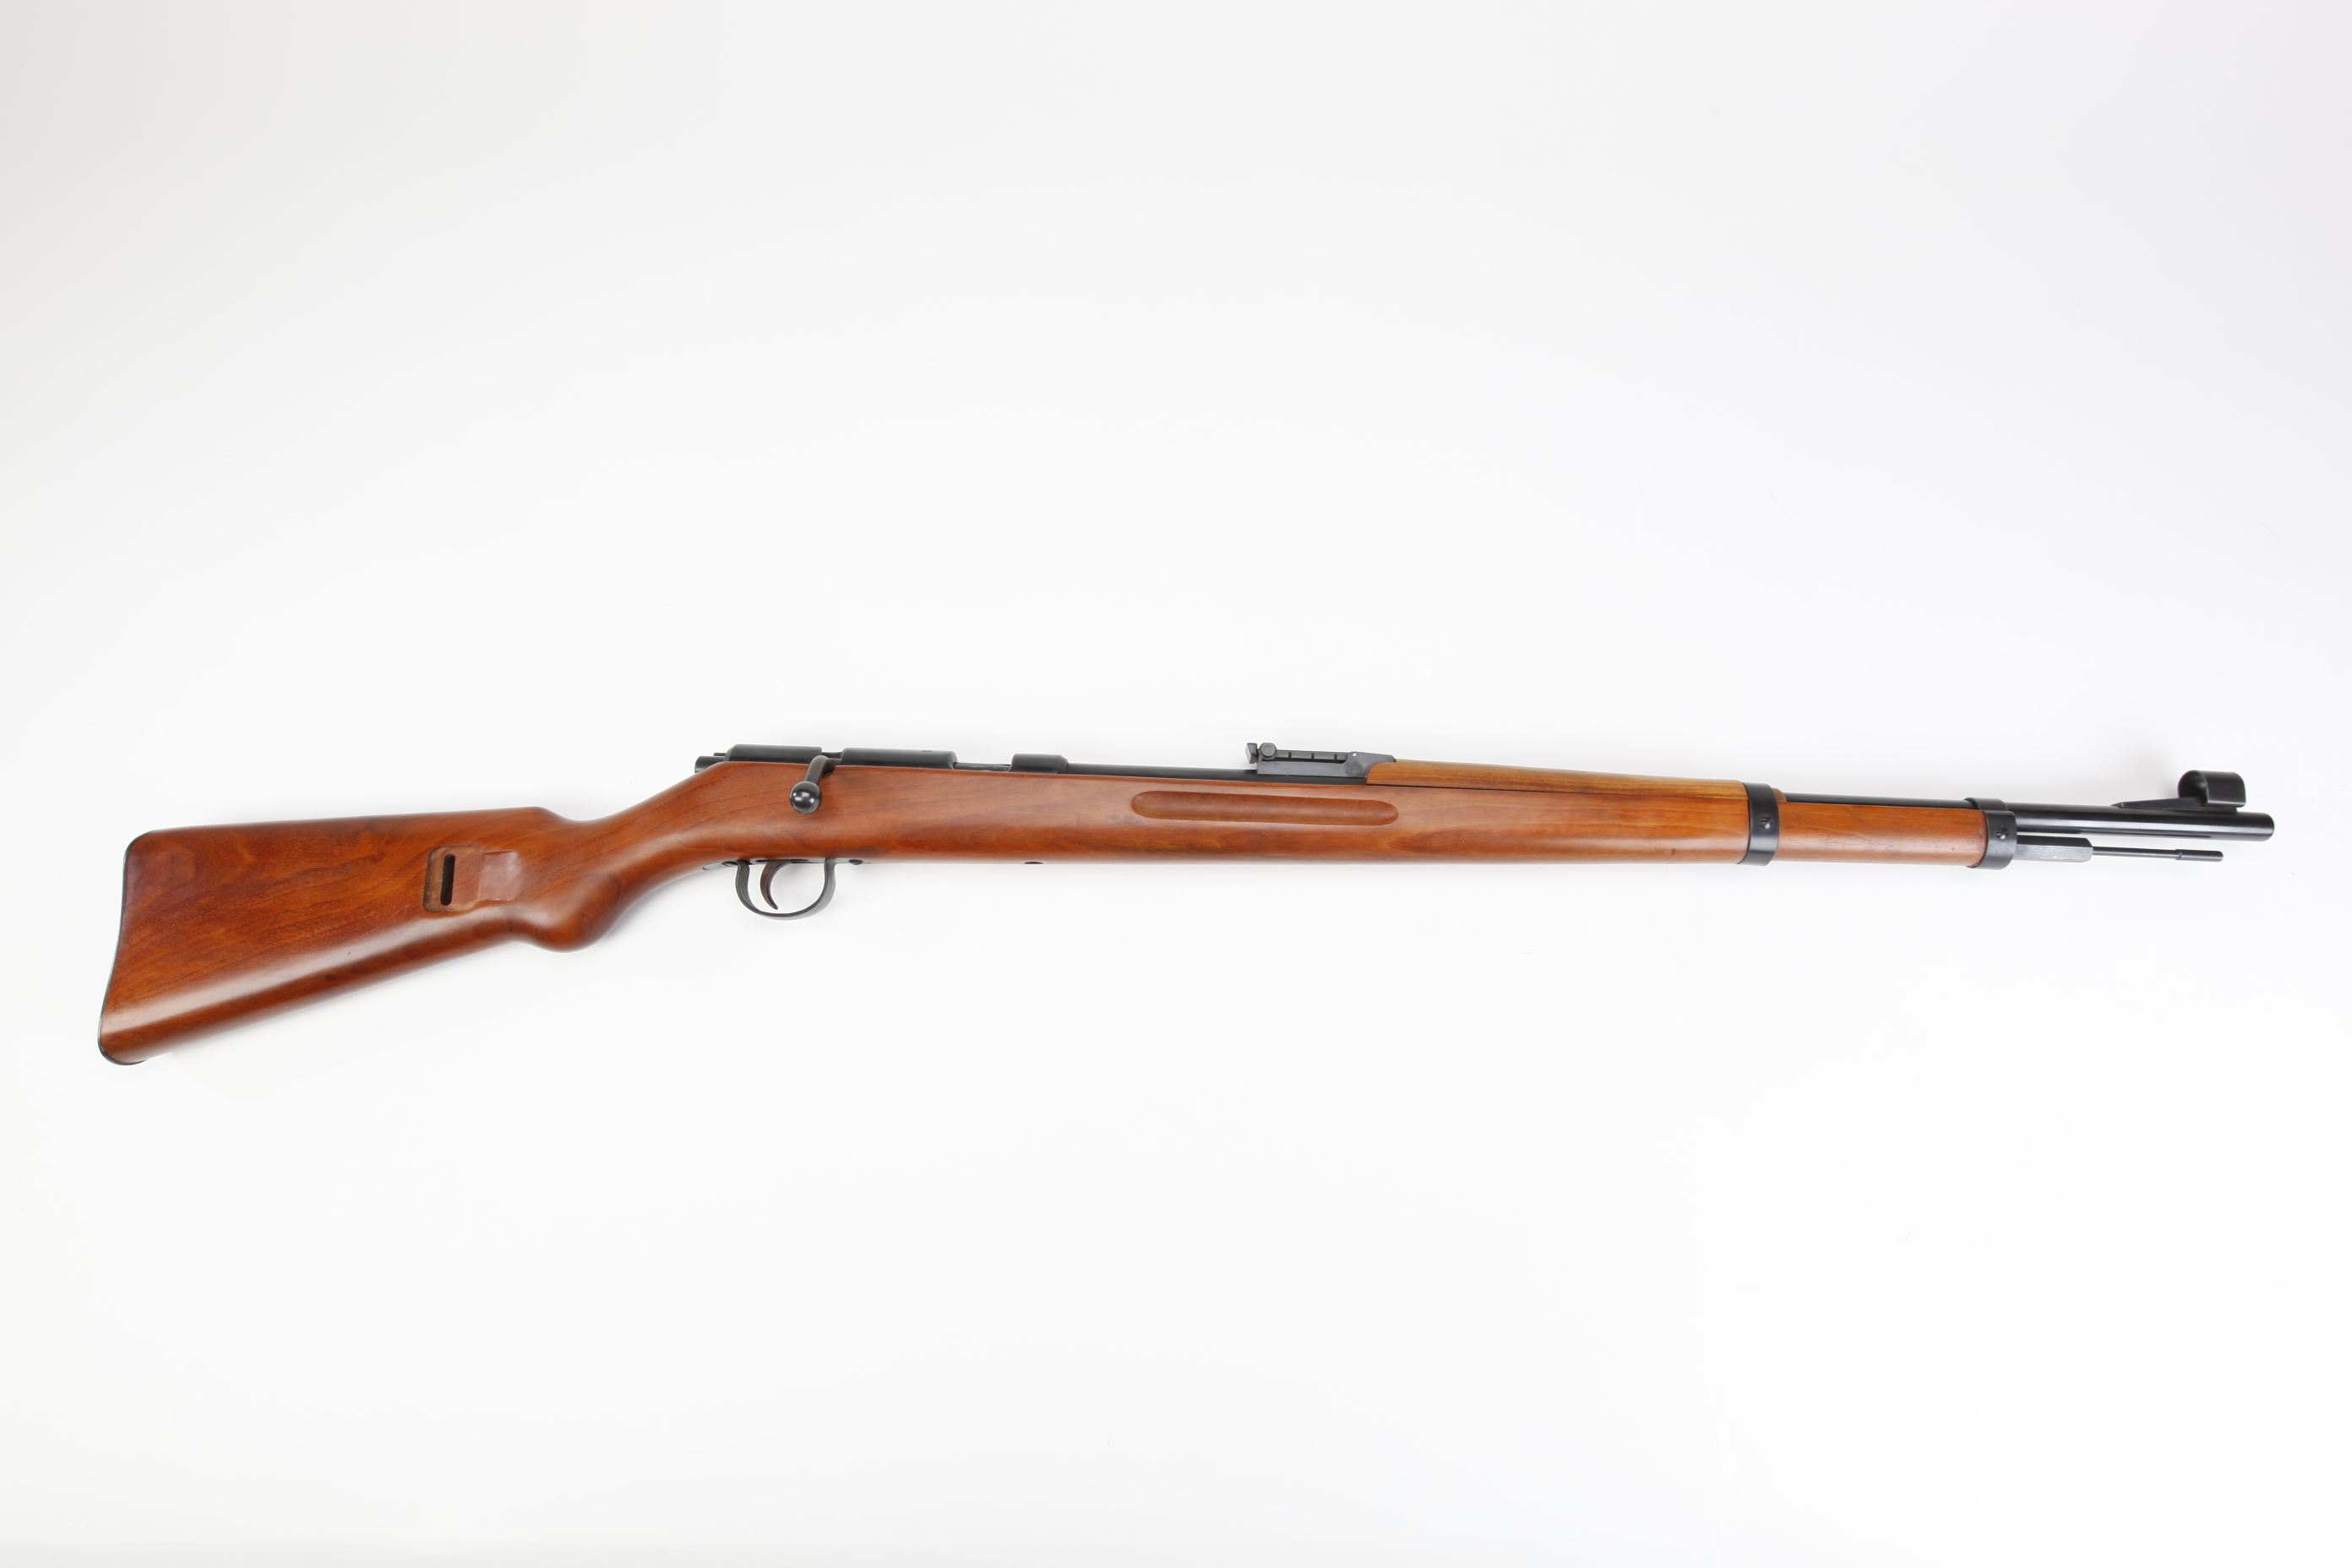 Erma Werke Waffenfabrik E40W Bolt Action Rifle